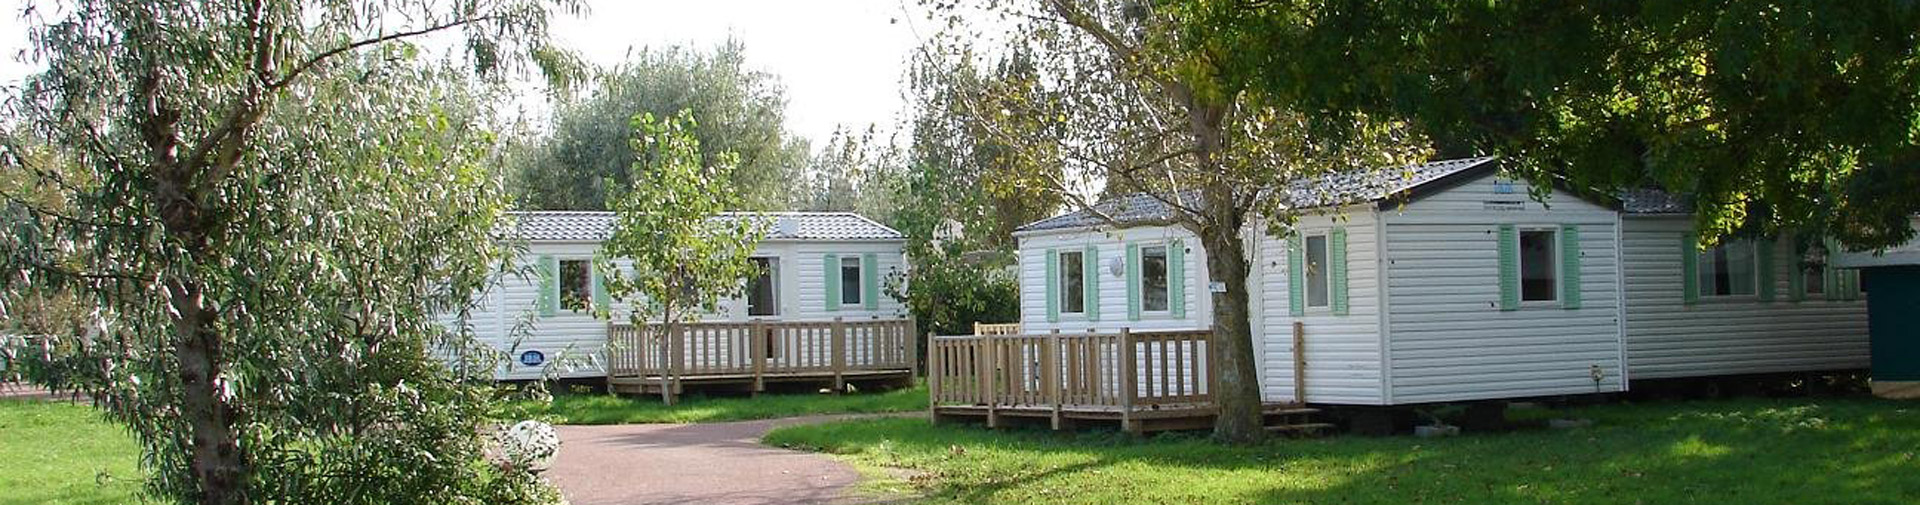 location-mobil-home-ile-oleron-modele9